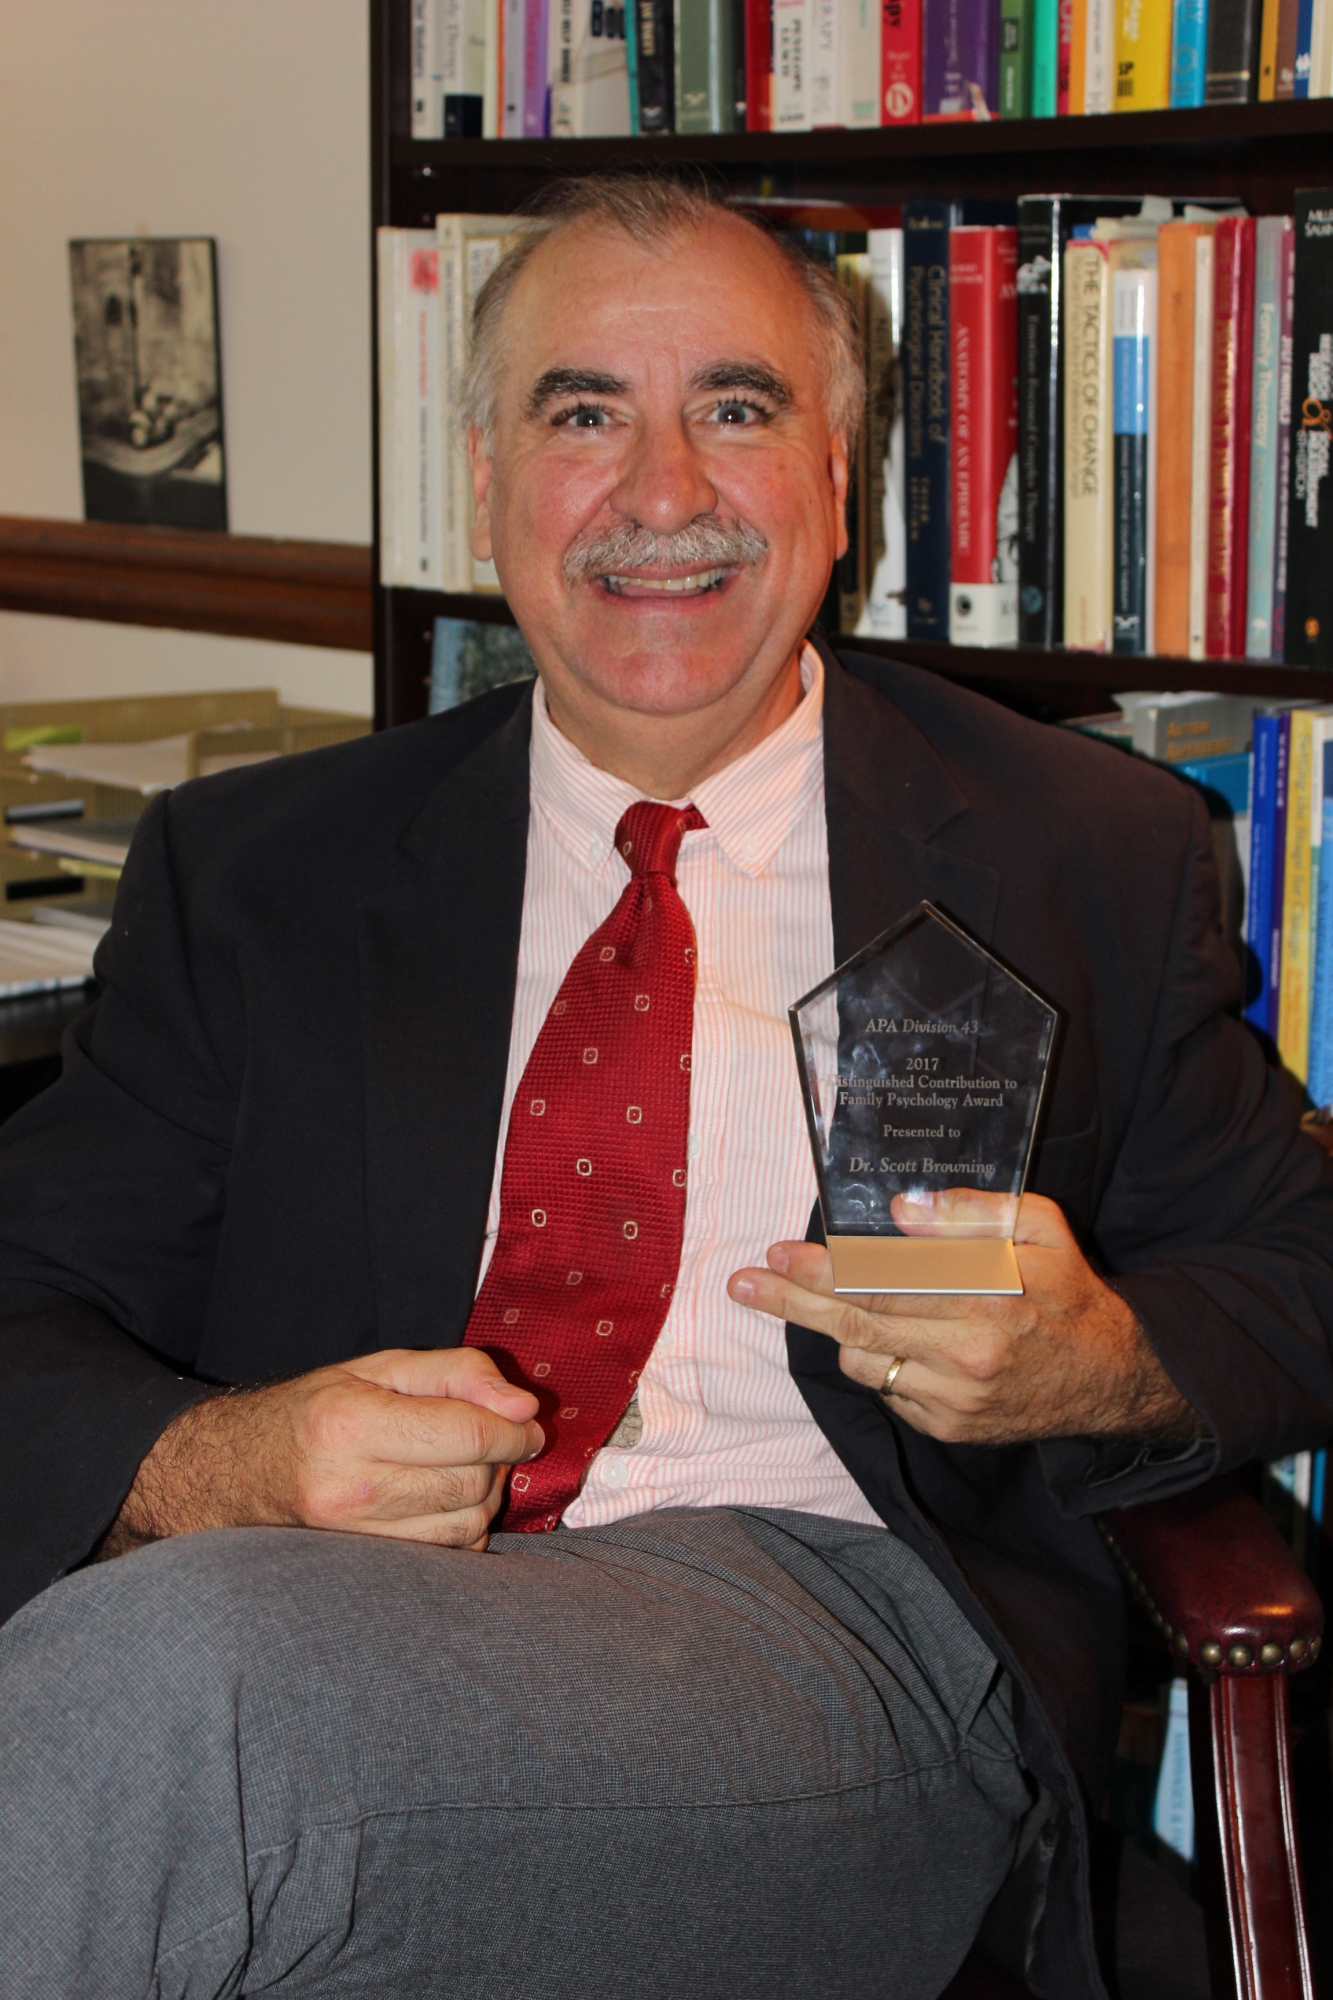 Dr. Browning poses with his award.